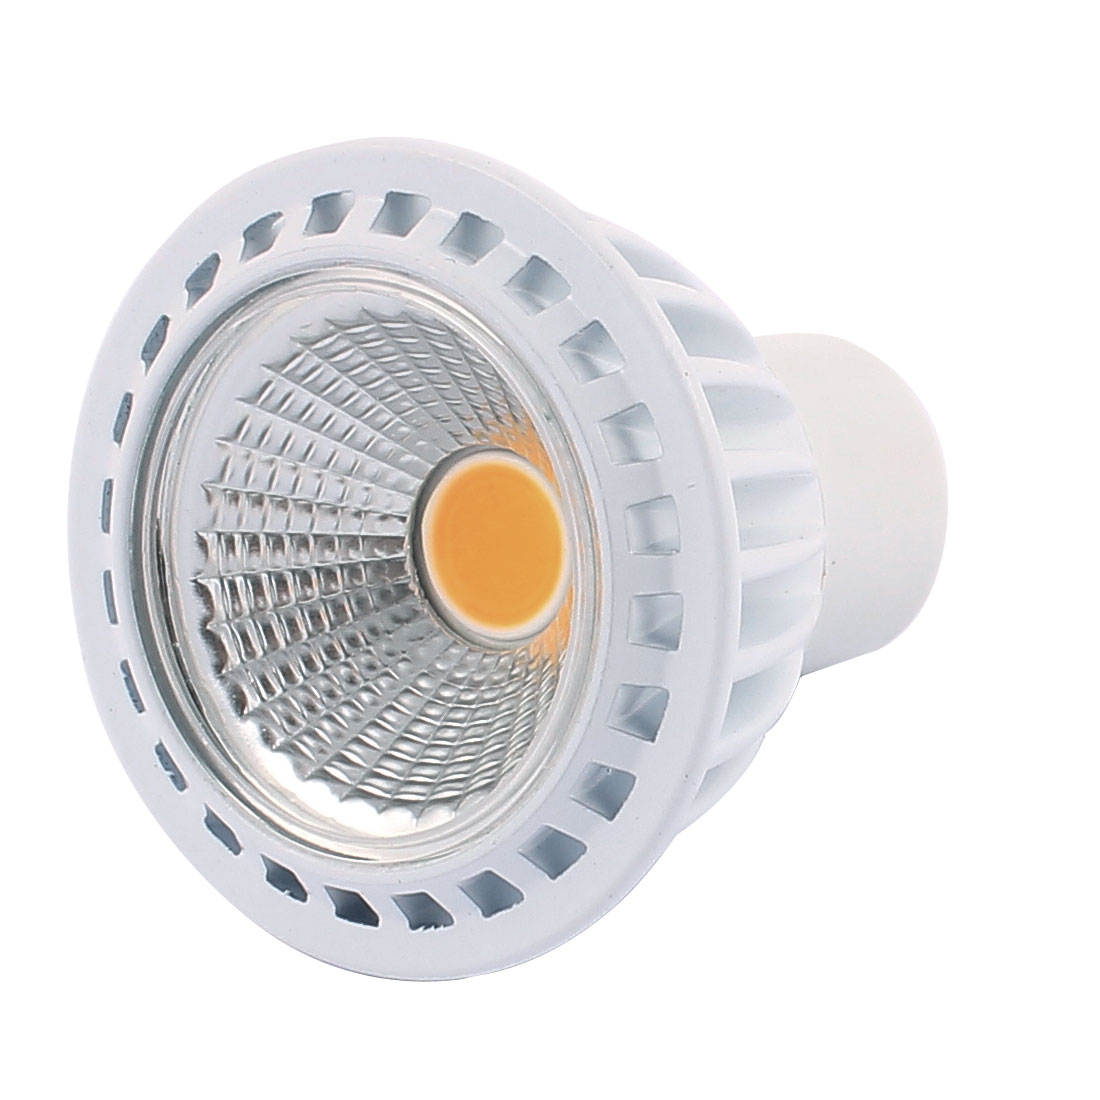 AC85-265V 3W Ultra Bright GU5.3 COB LED Spotlight Lamp Bulb Downlight Warm White